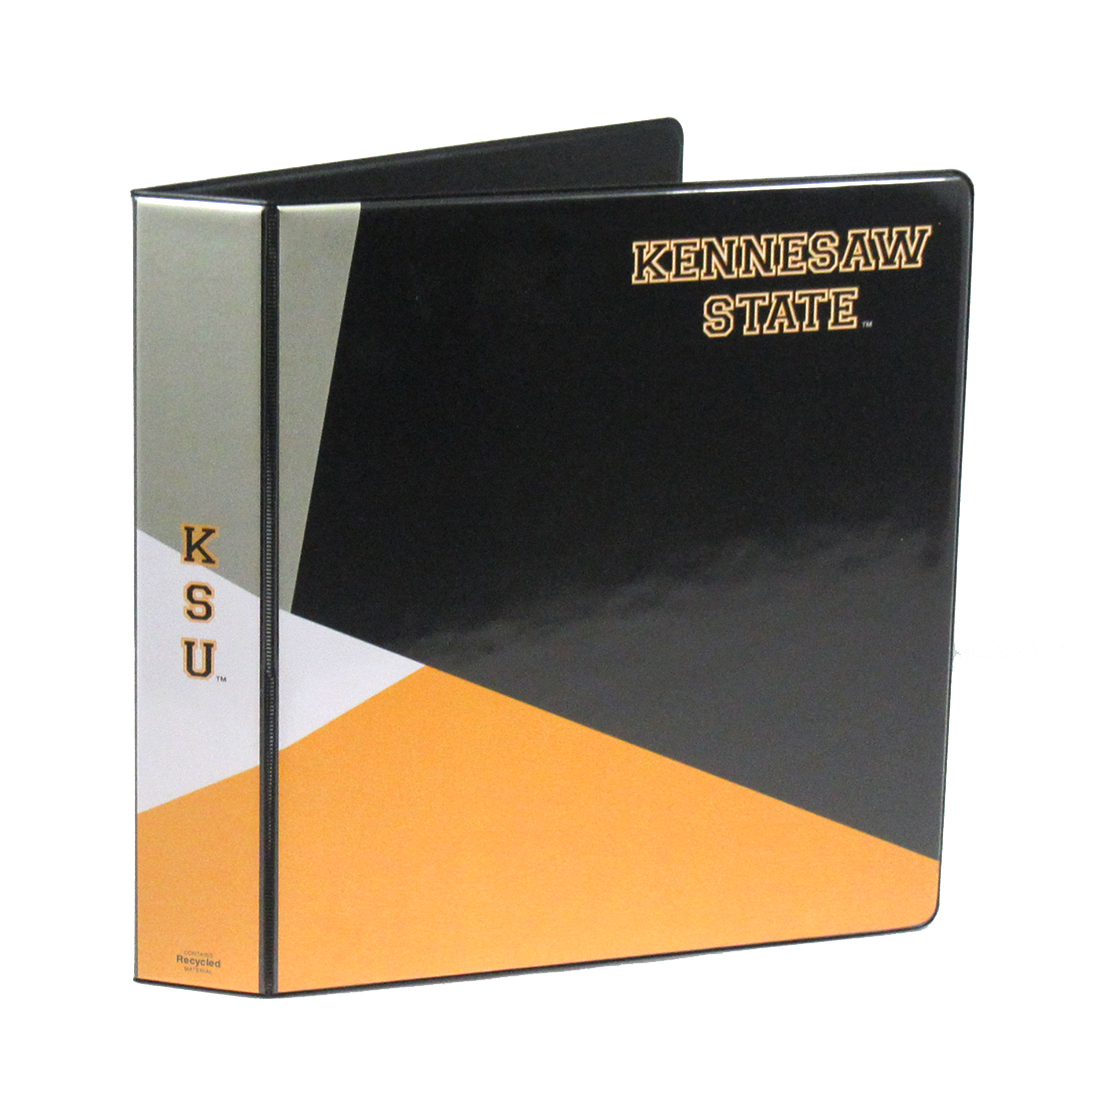 "Image For Binder 1.5"" KSU Geometric"